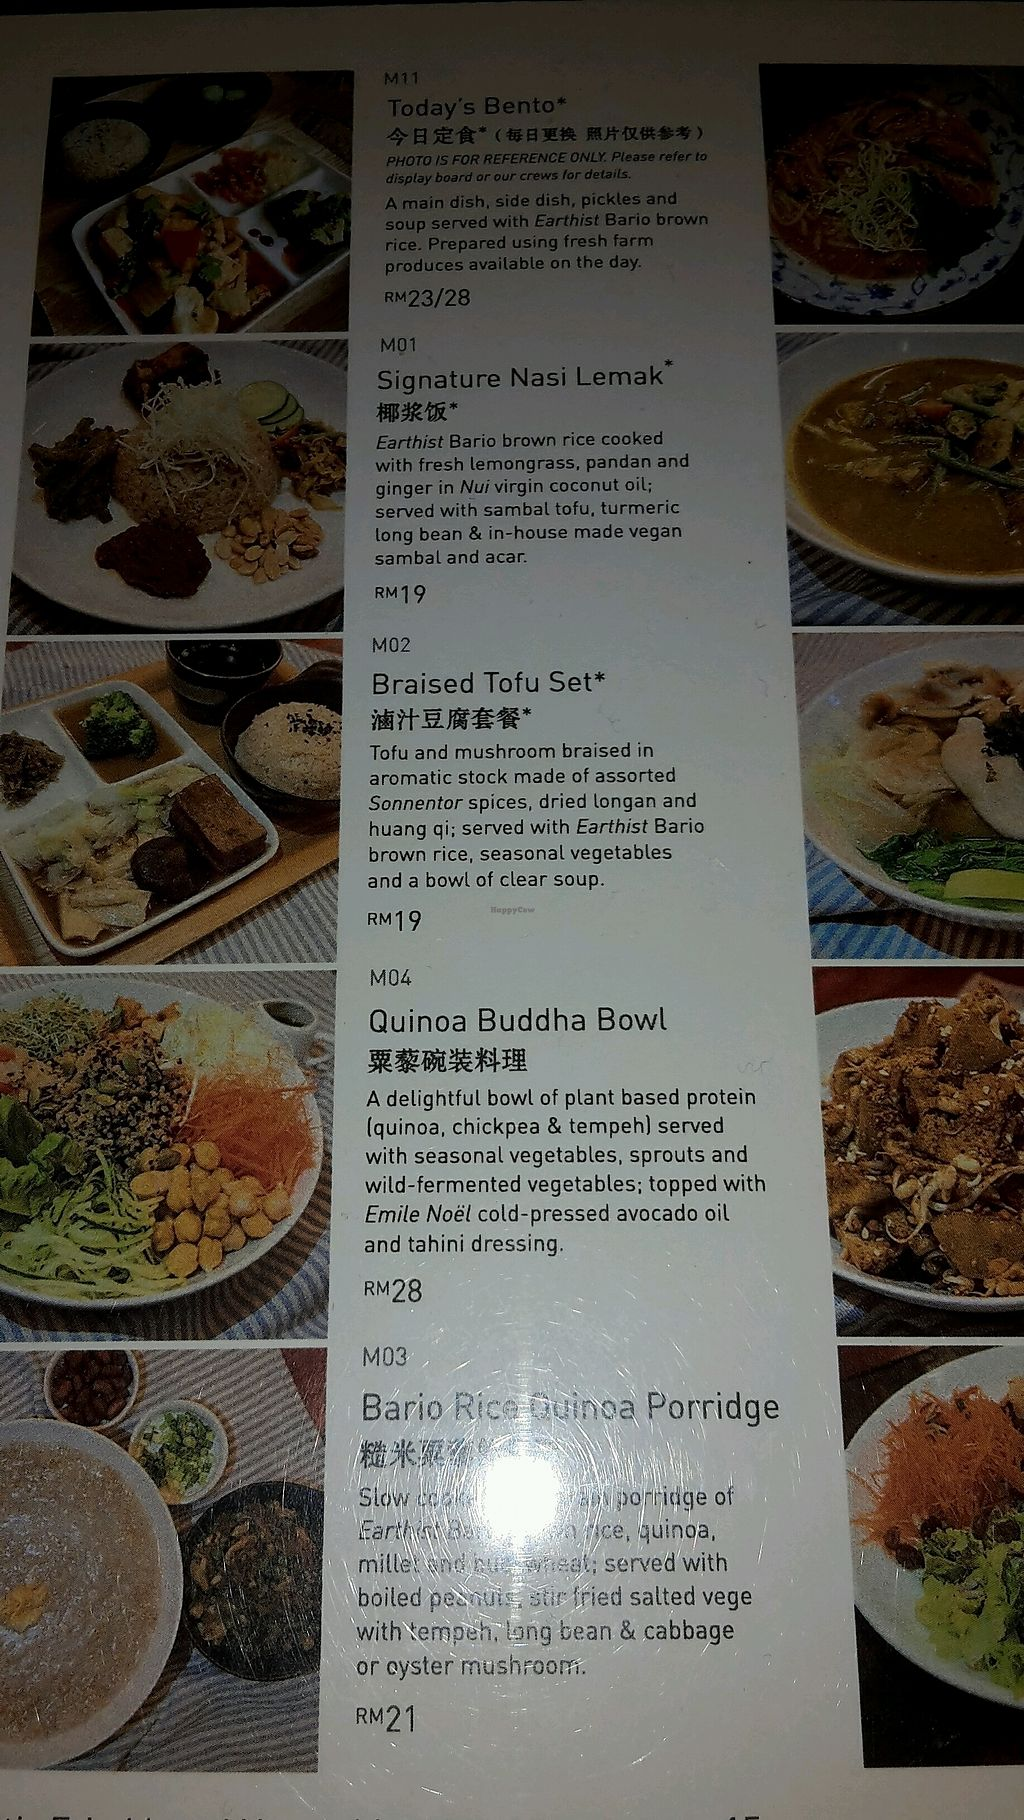 """Photo of Justlife Cafe  by <a href=""""/members/profile/vegan_simon"""">vegan_simon</a> <br/>mains menu #2 <br/> December 3, 2017  - <a href='/contact/abuse/image/74667/331690'>Report</a>"""